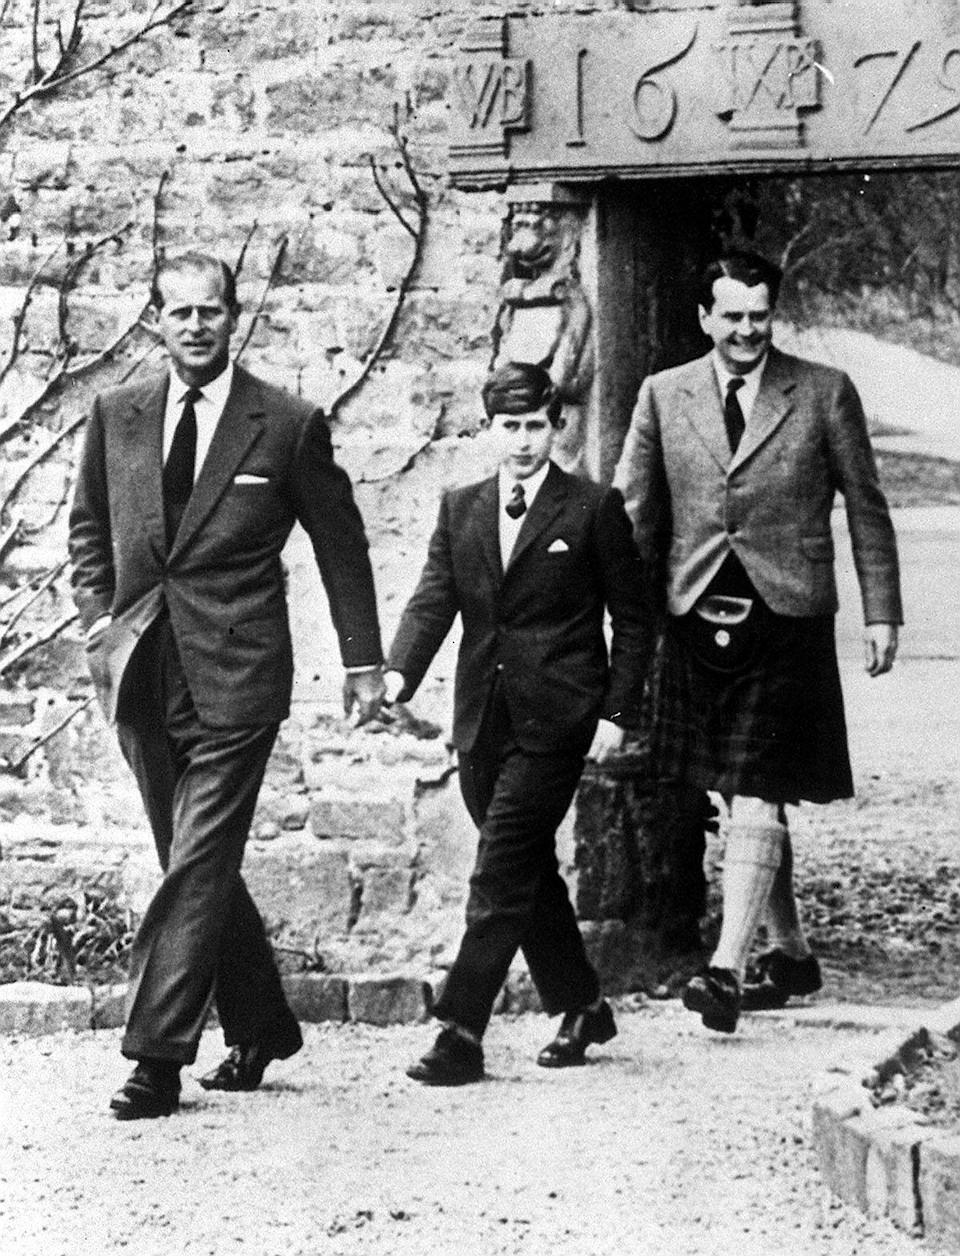 Prince Charles attended the same school as his father, Prince Philip, and was accompanied by him on his first day back in 1962. It's widely known that Prince Charles didn't enjoy his time at the Scottish school – hence why his own sons were educated at Eton College instead. <em>[Photo: PA]</em>